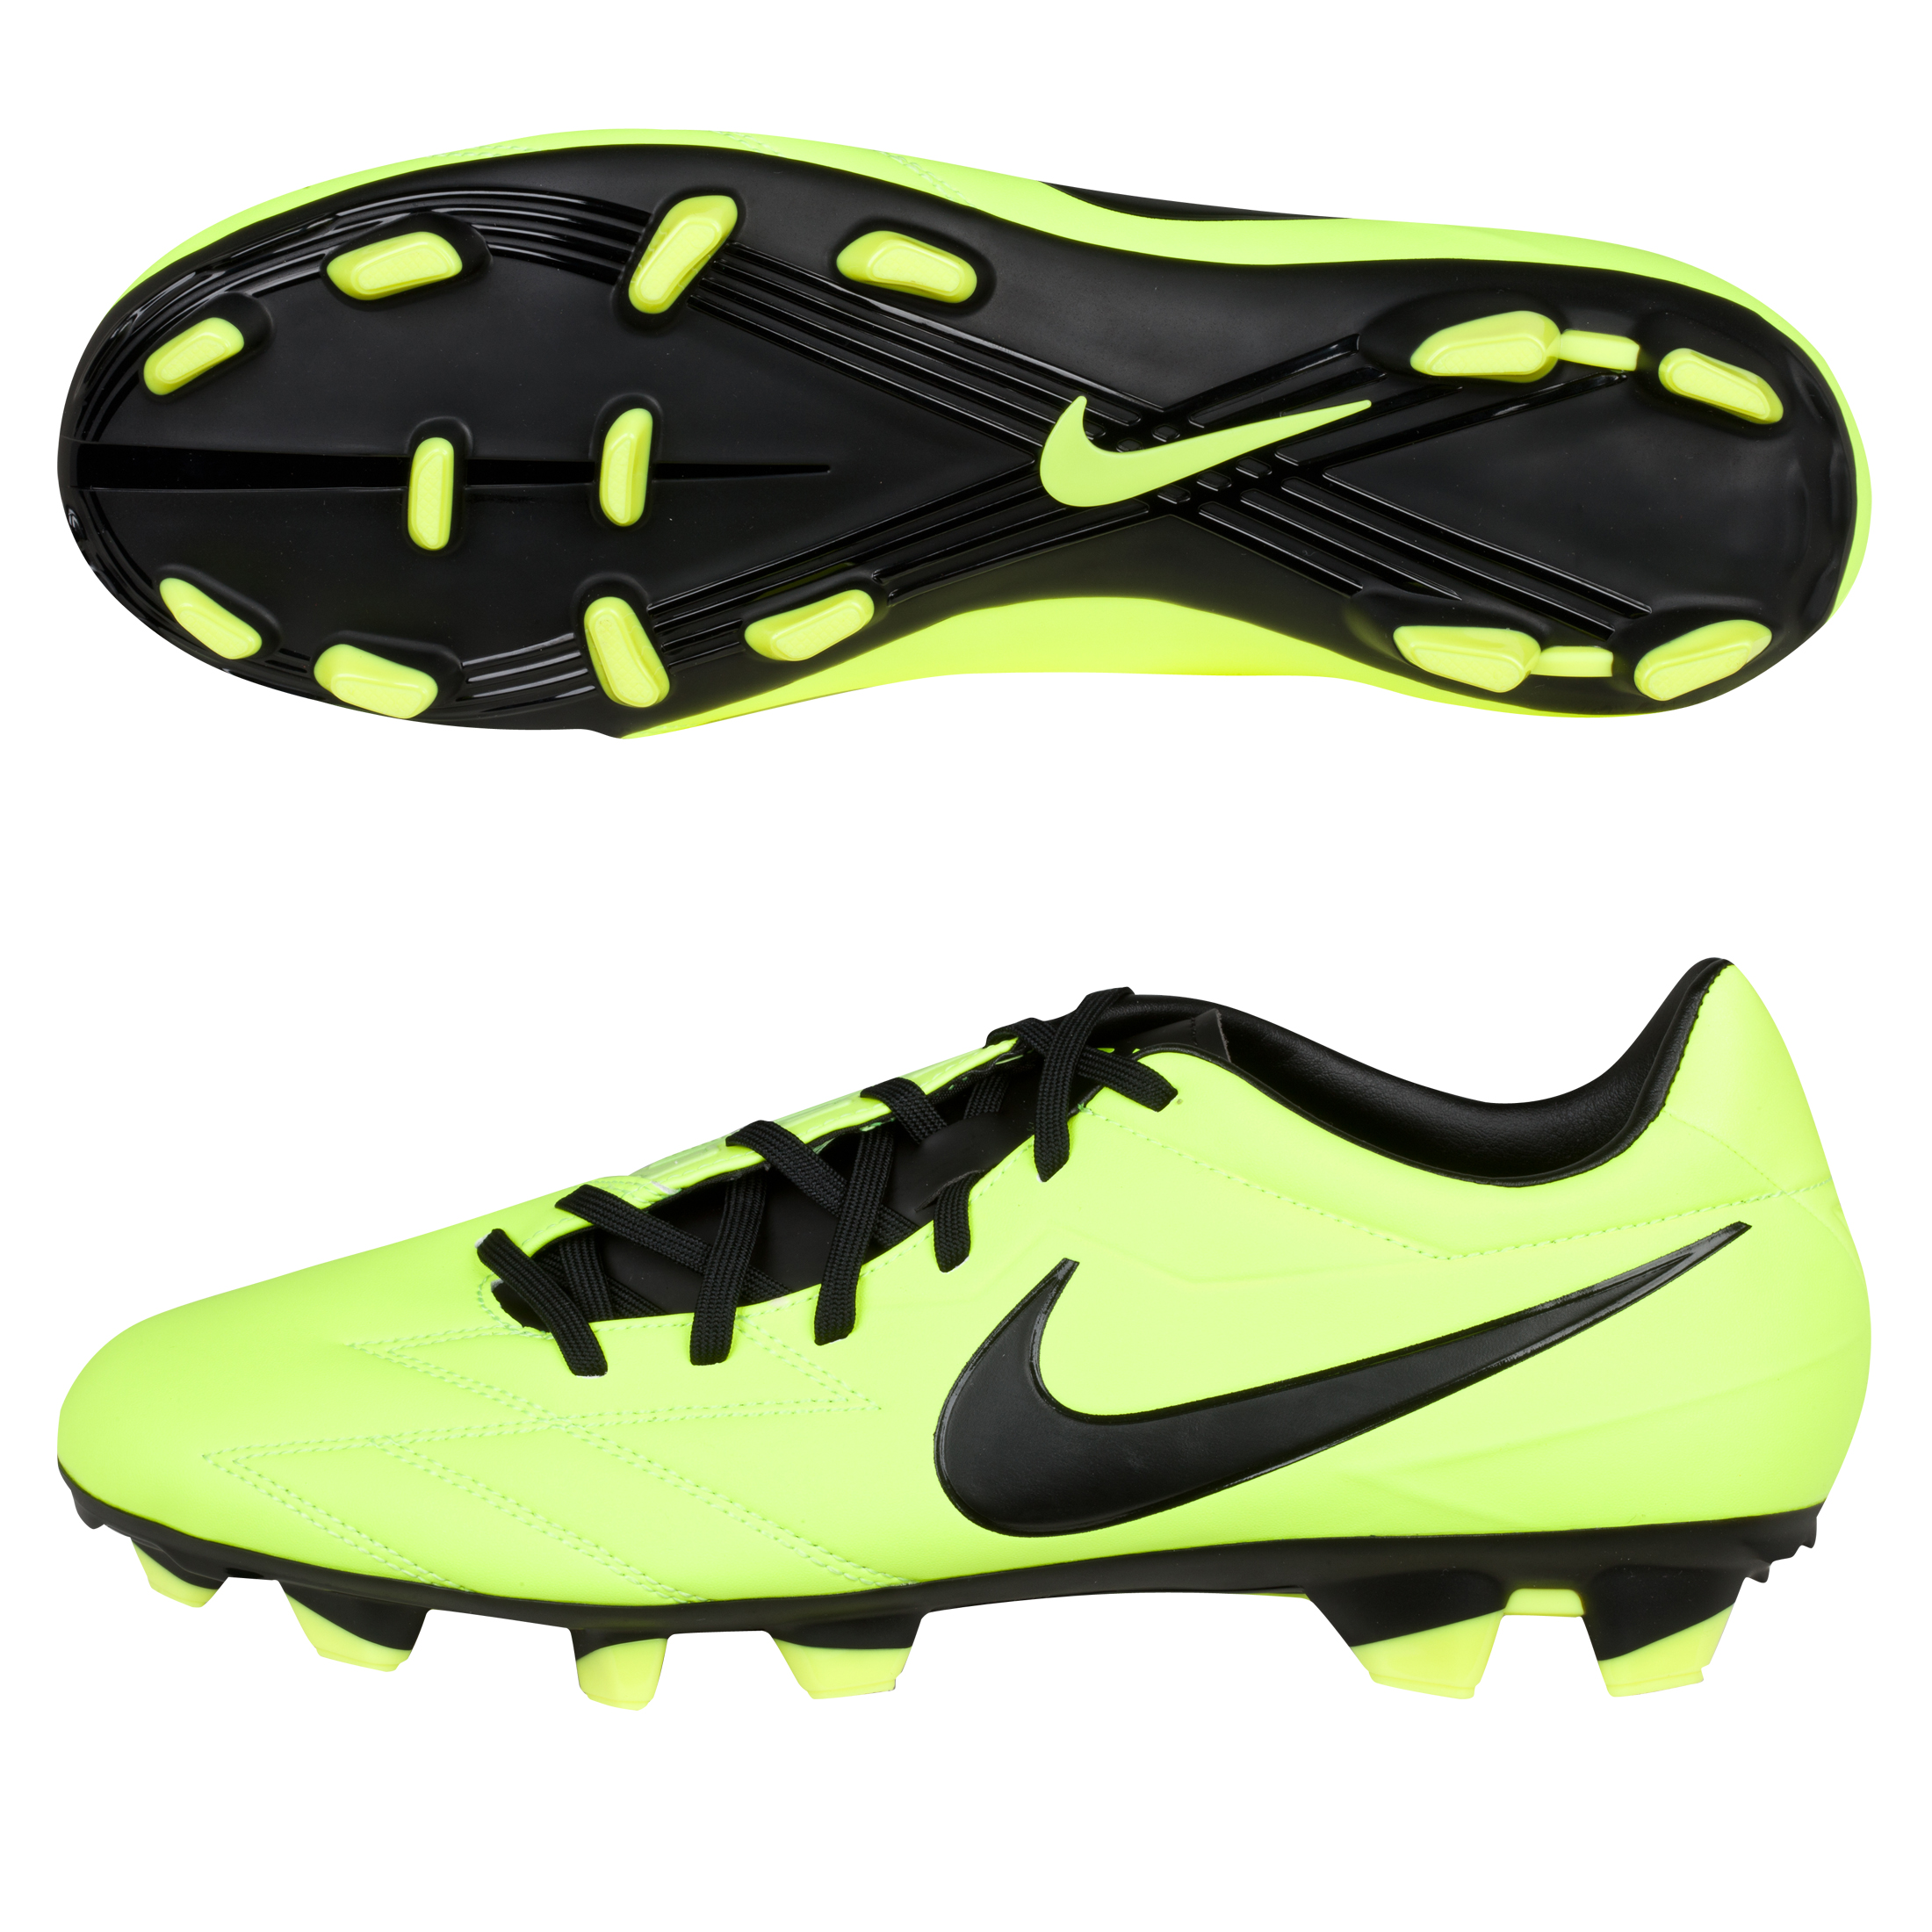 Nike Total90 Strike IV Firm Ground Football Boots - Volt/Black/Citron